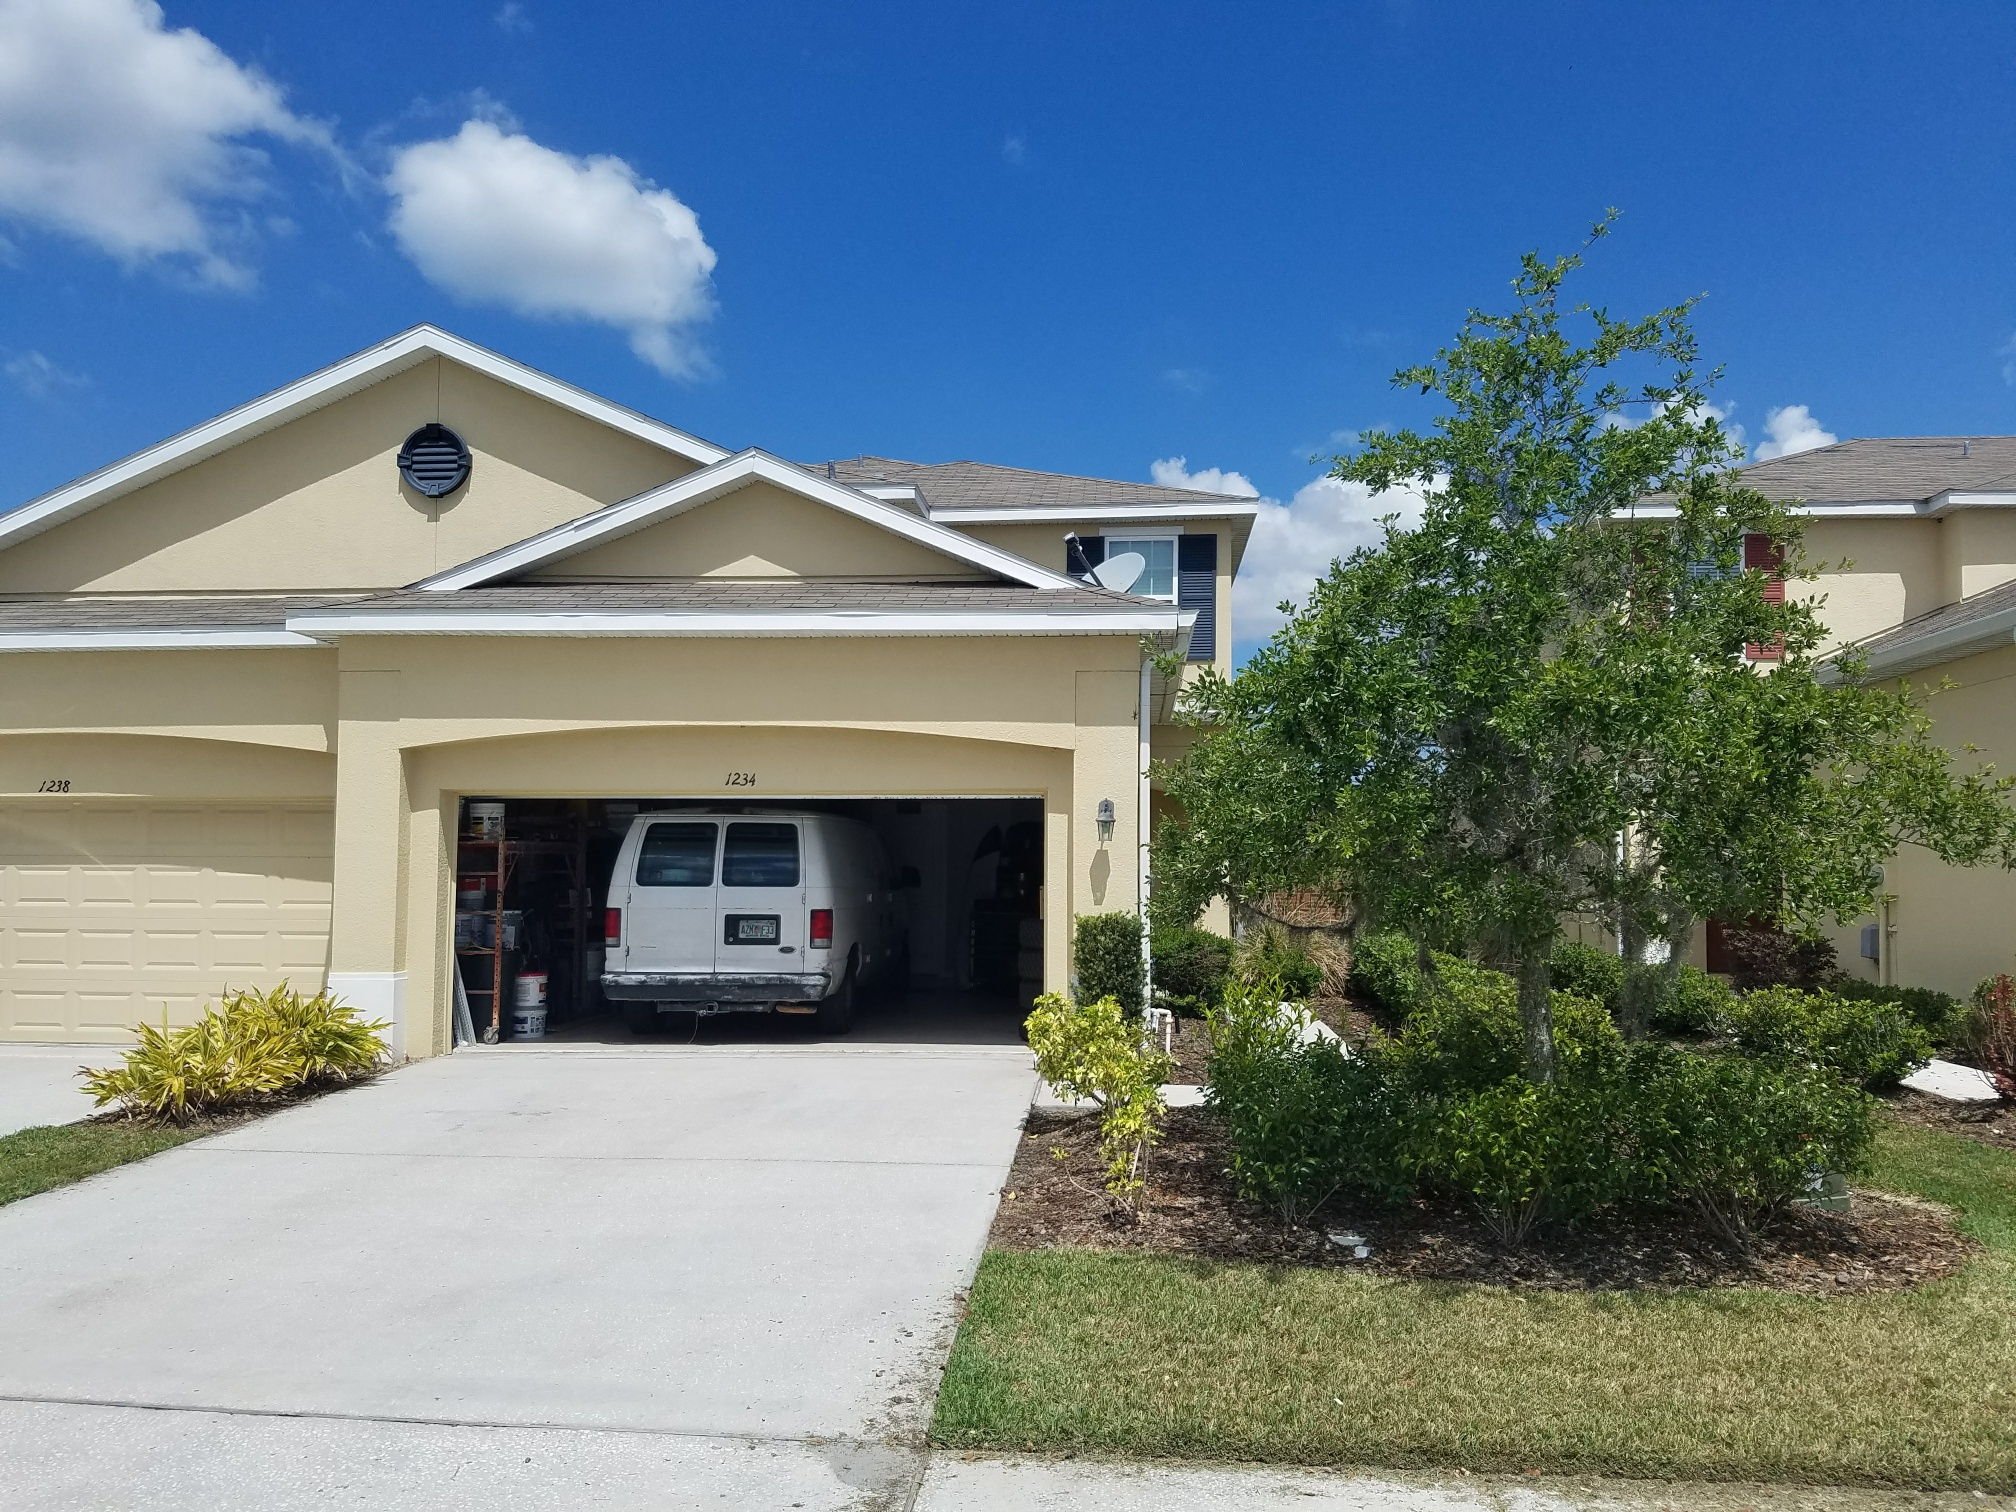 Home for rent 1234 Scarlet Oak Loop, Winter Garden, FL 34787 | Pathlig